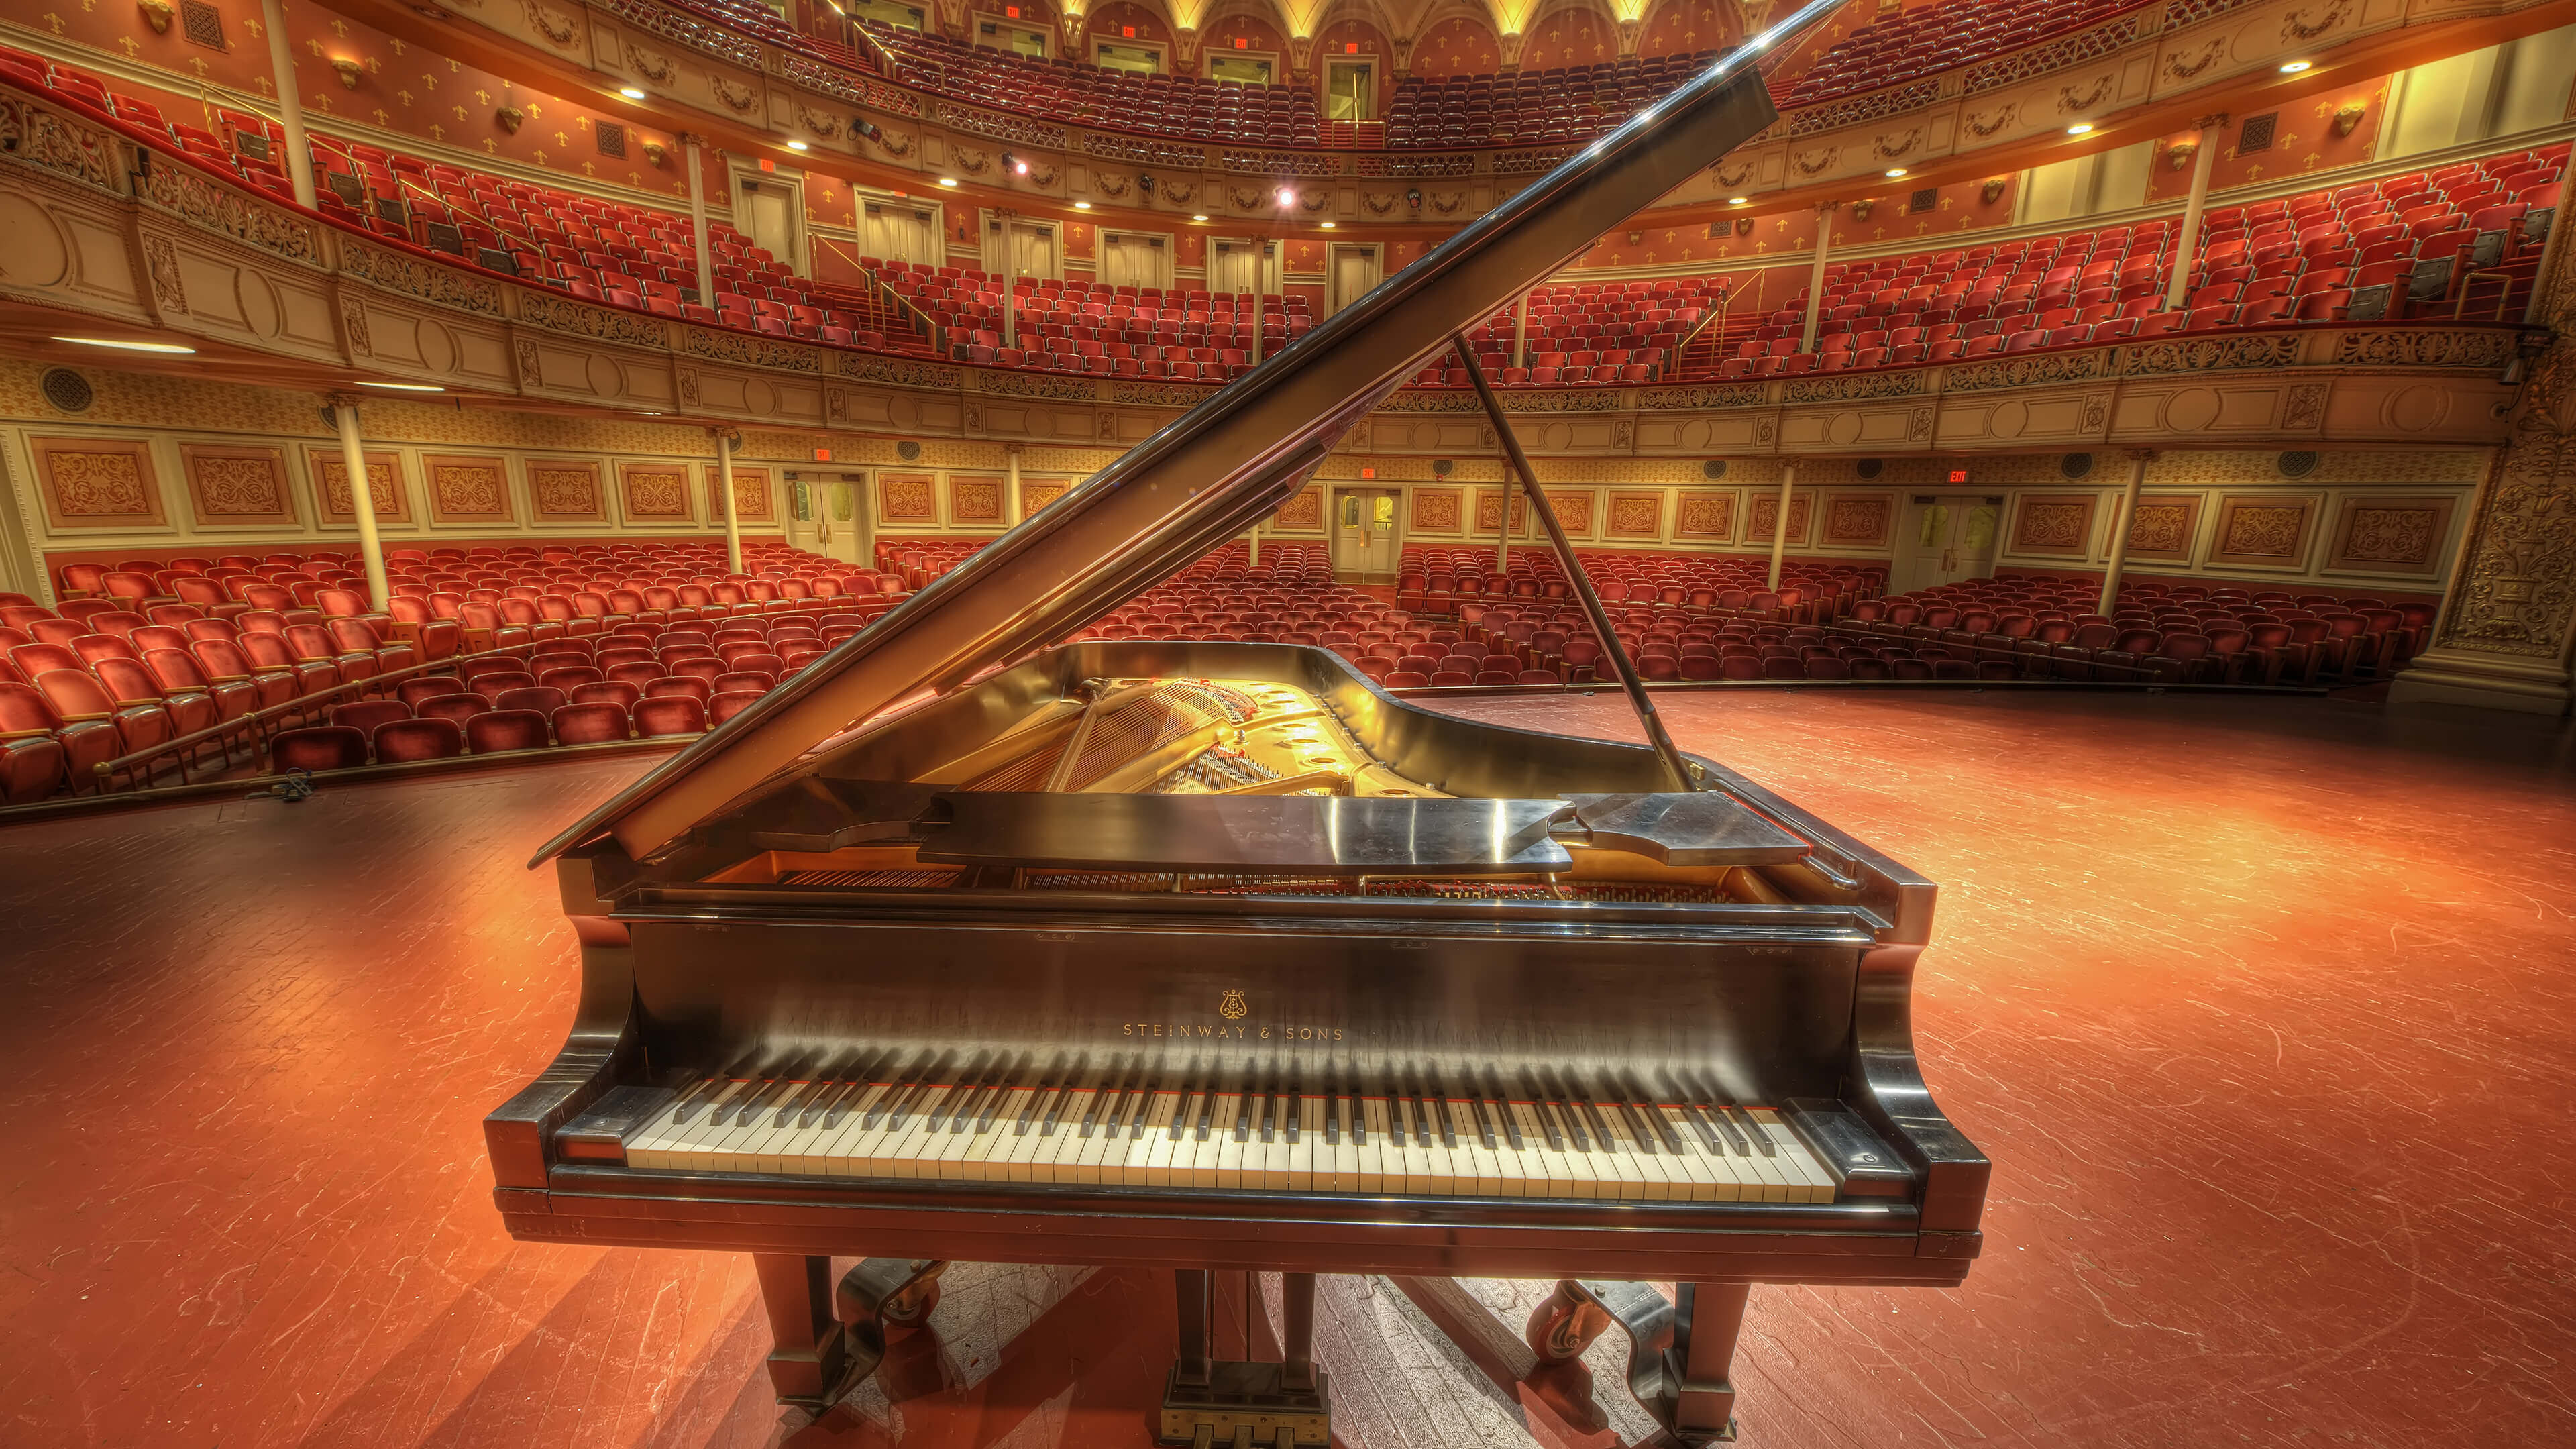 Steinway Sons Piano at Carnegie Music Hall Pittsburgh 4K Wallpaper 3840x2160